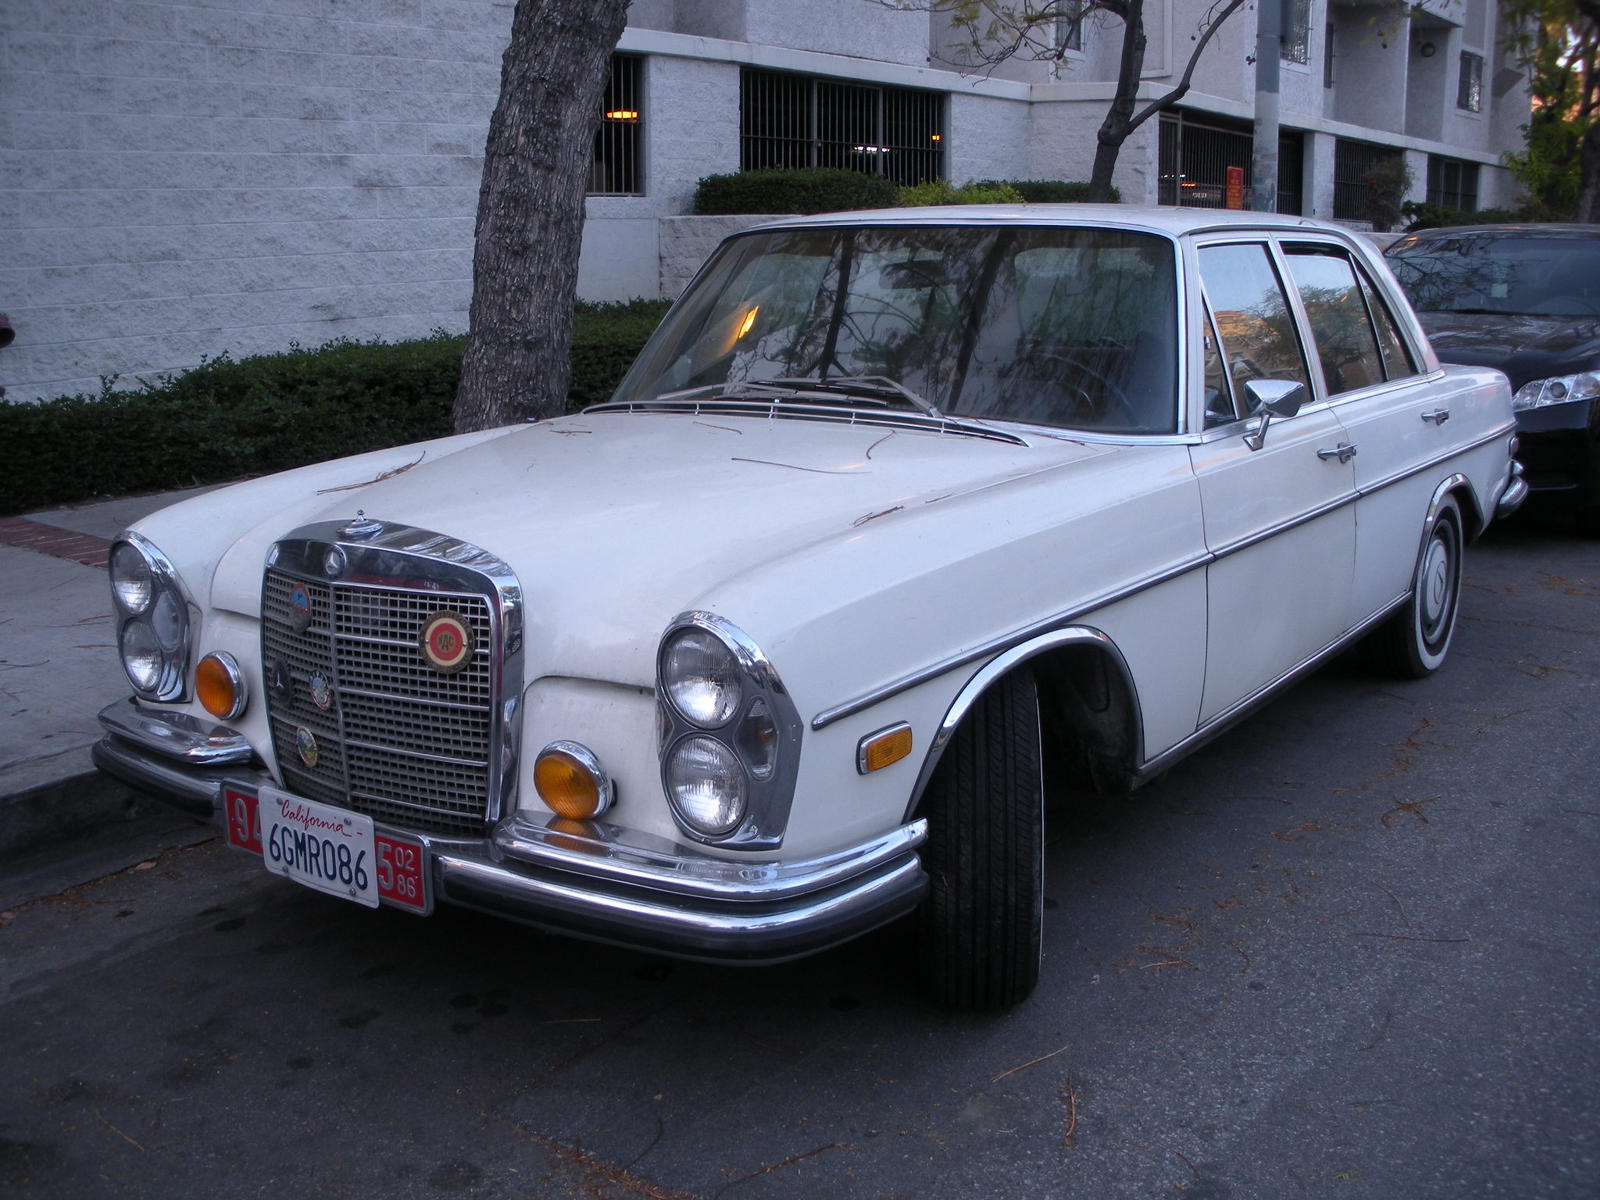 Mercedes benz 280se at usc by rlkitterman on deviantart for Mercedes benz of southern california